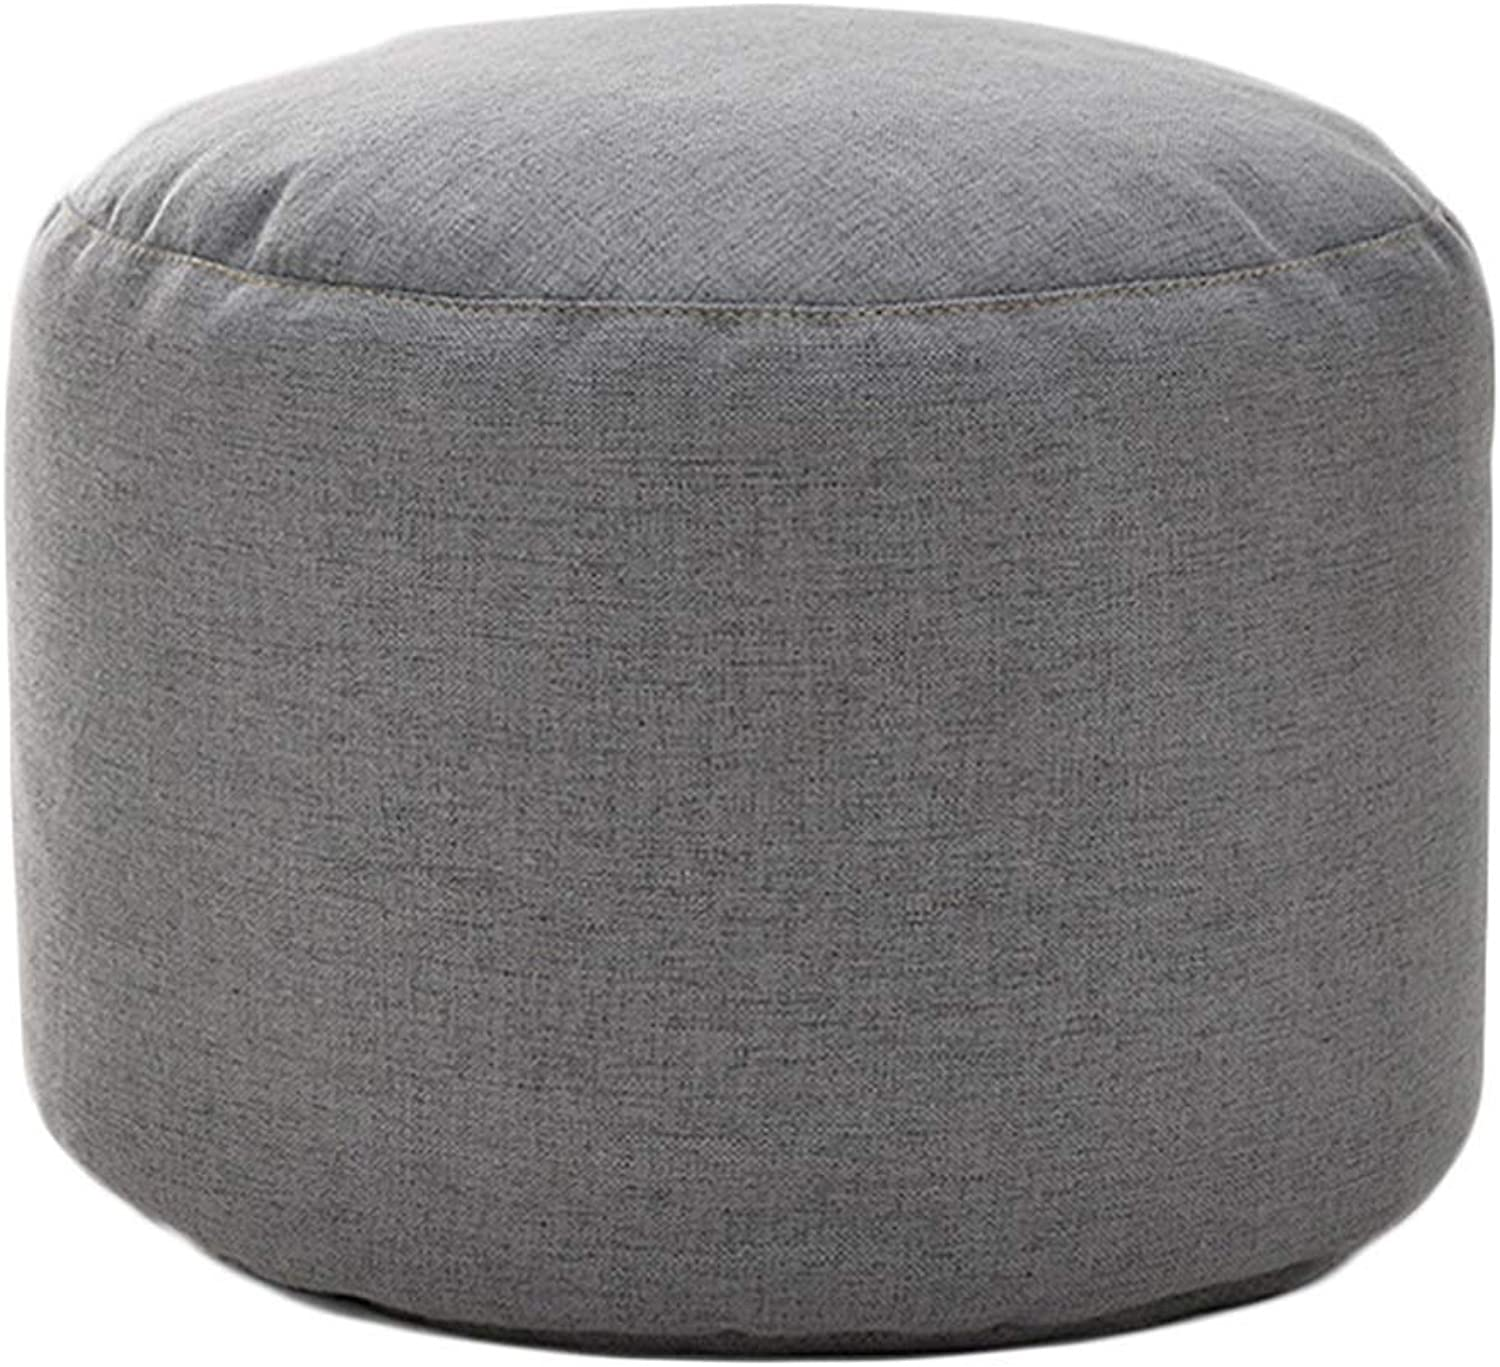 Footstool Simple Cloth Multifunction Household Sofa Stool Small Stool Change shoes Bench Dressing Stool GMING (color   B, Size   30x30x22cm)